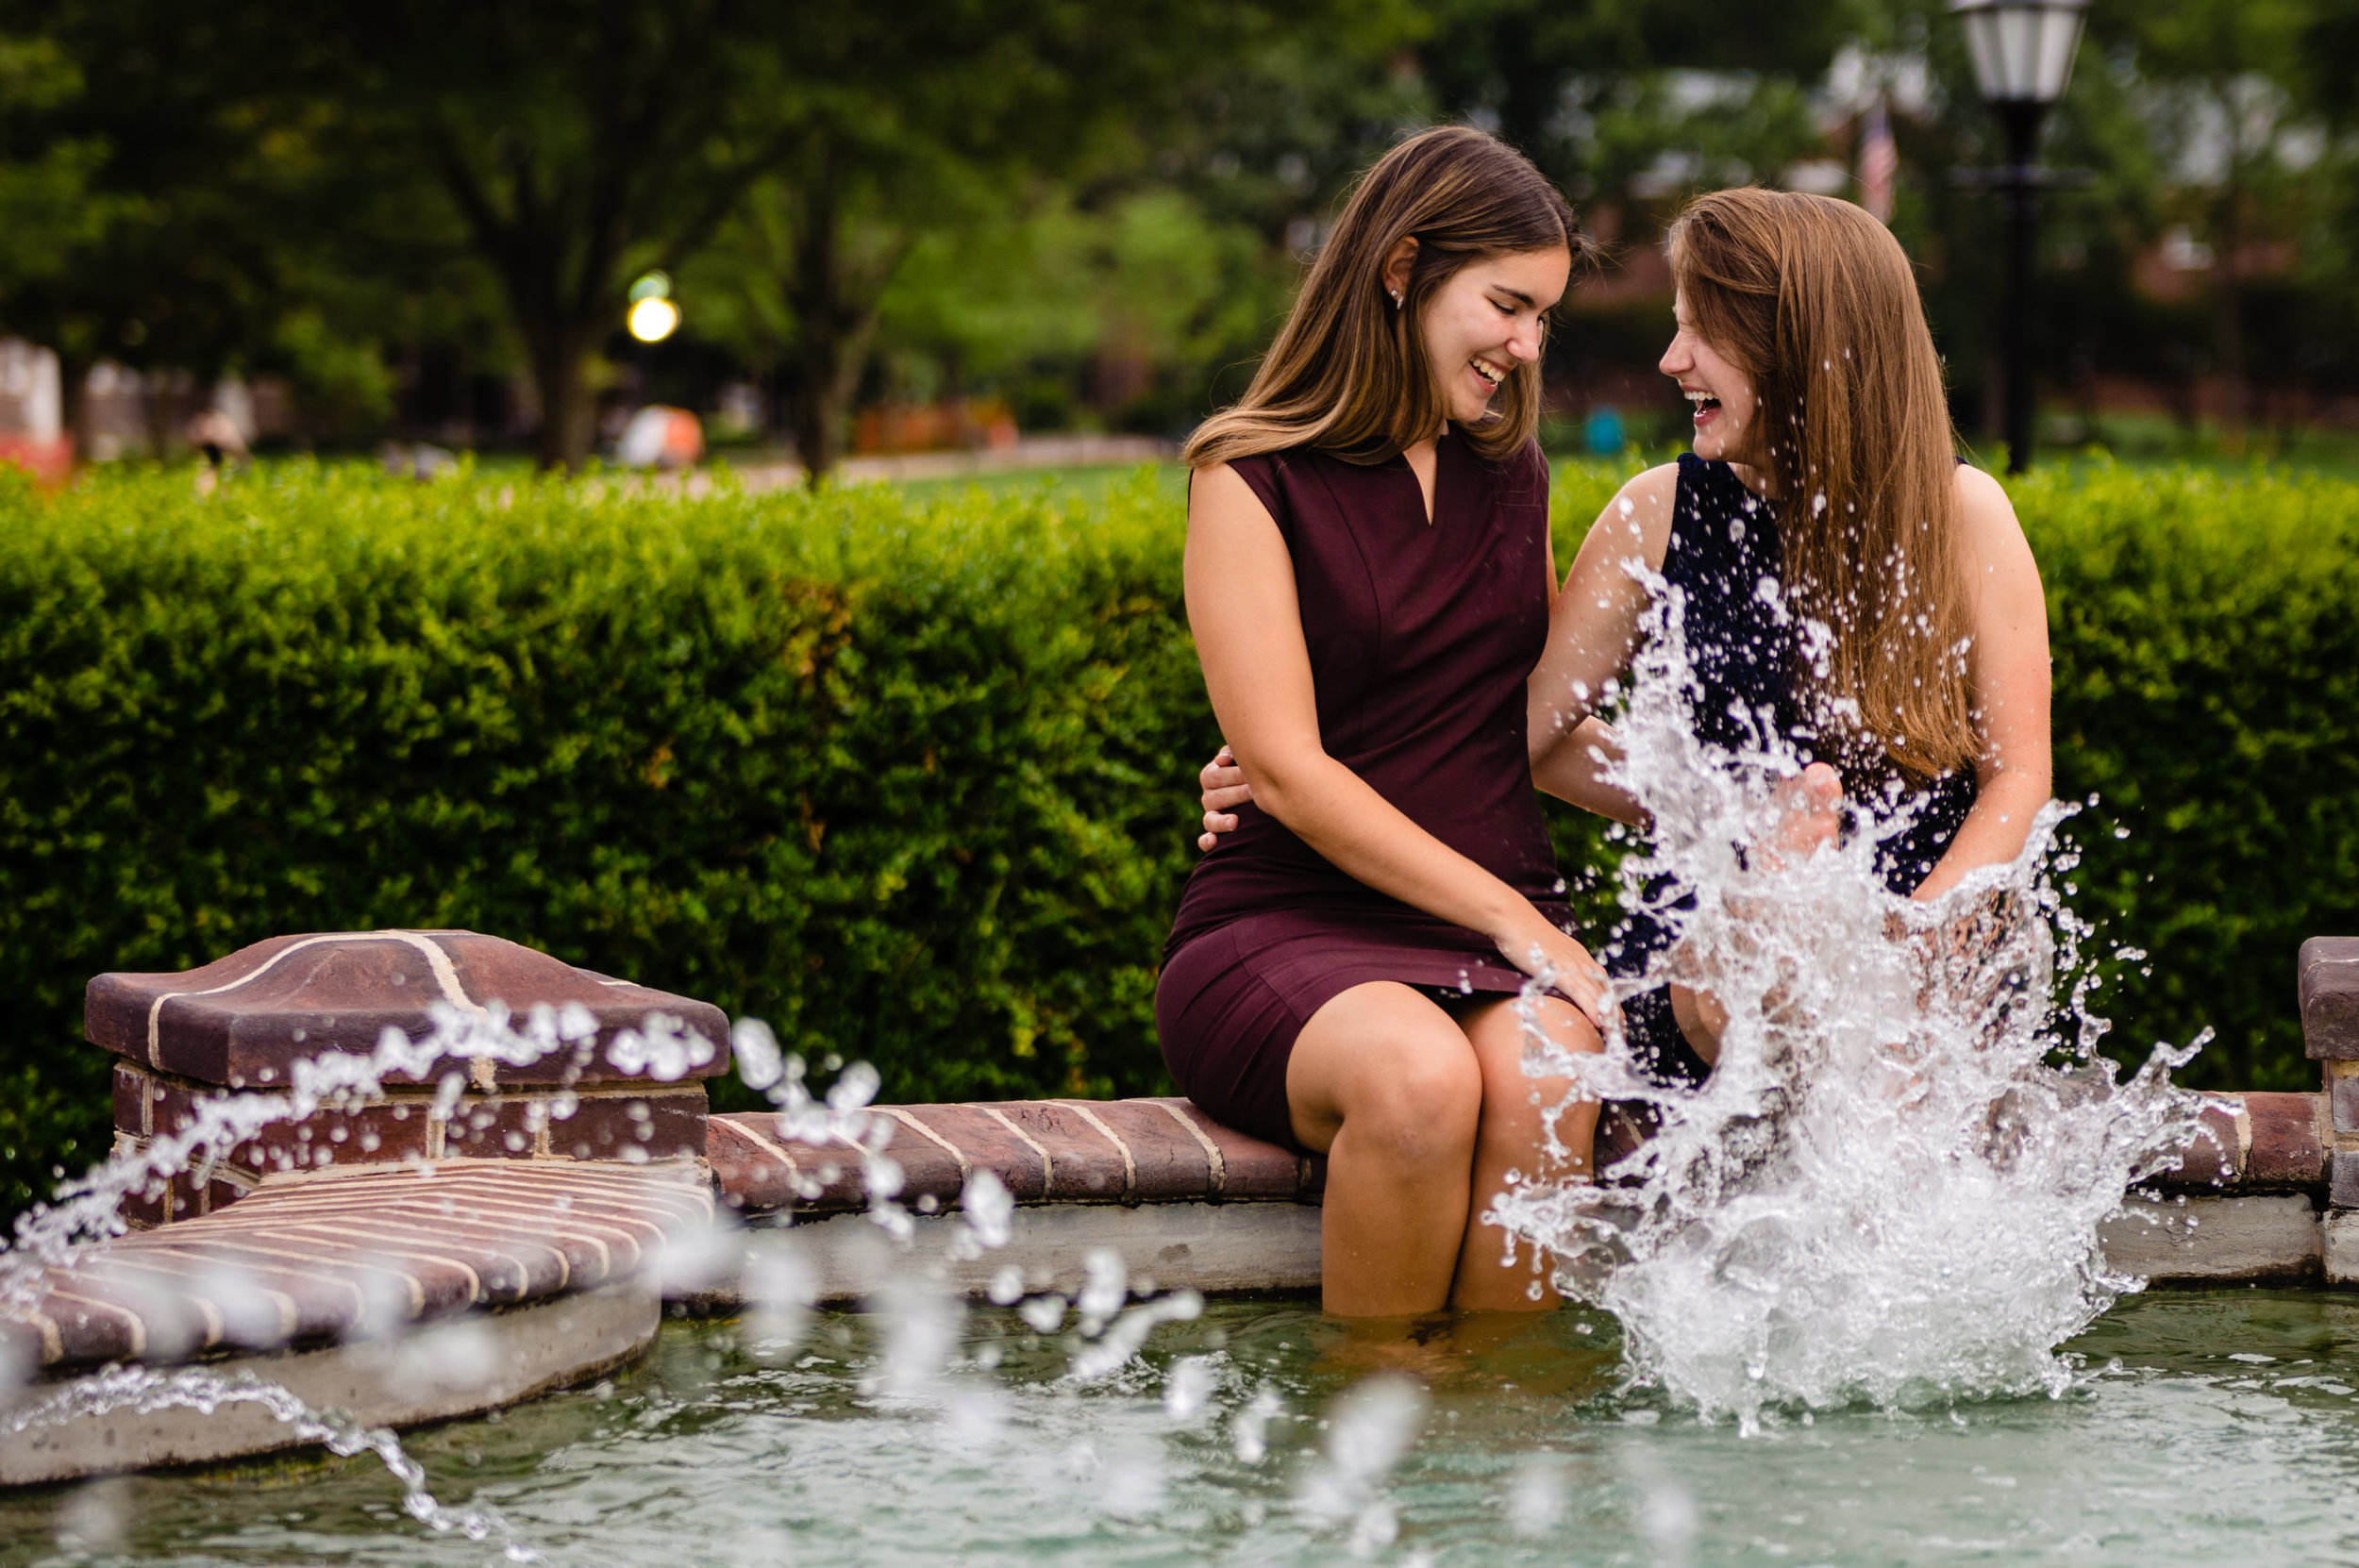 DelawareEngagement-Shelby&Amanda-5441.jpg